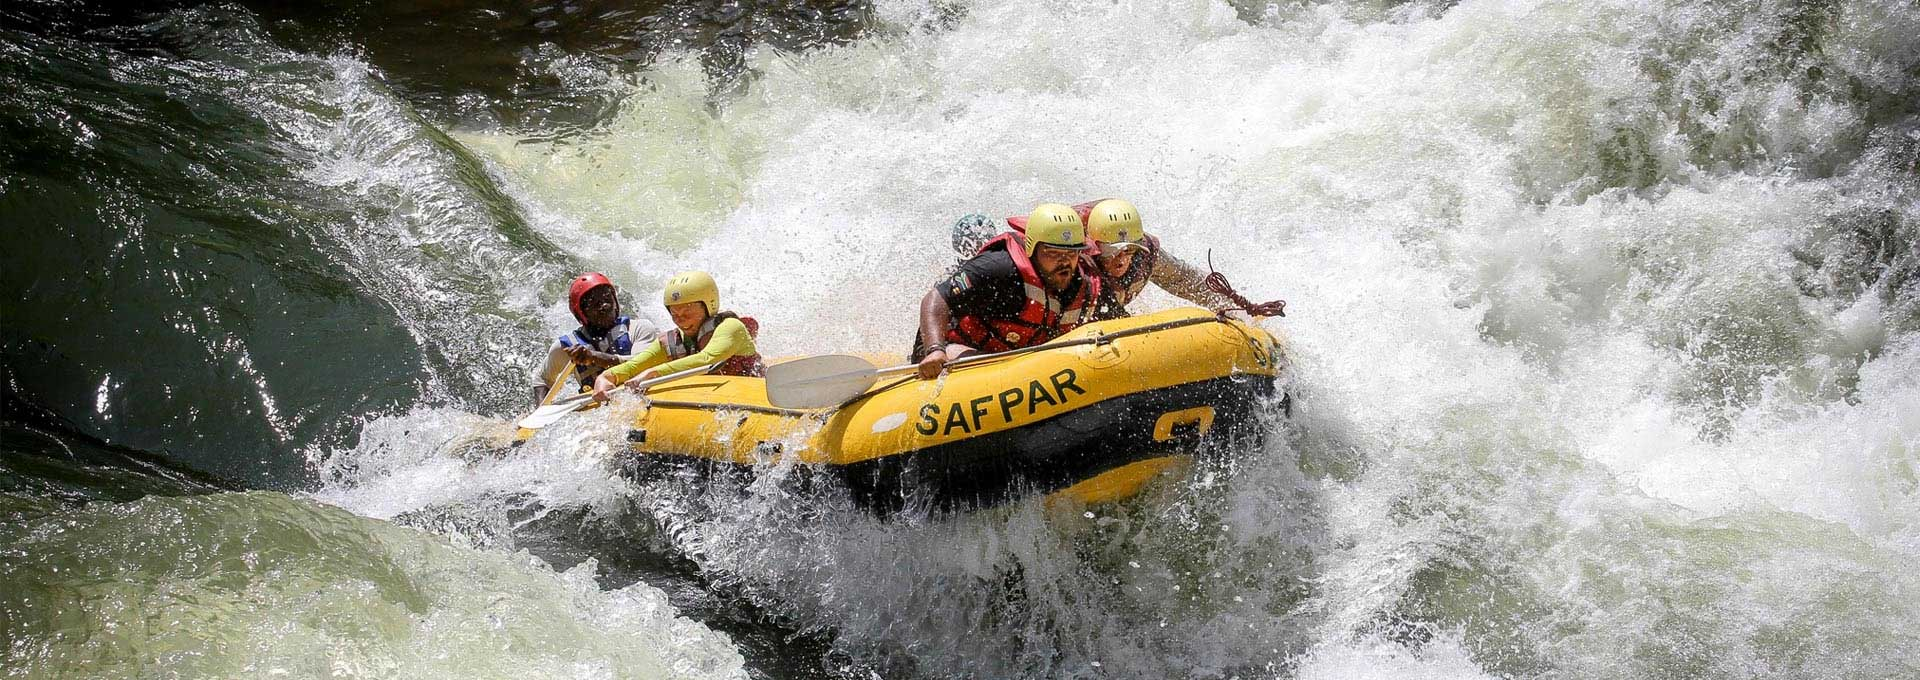 safpar-zambezi-river-rafting-best-white-water-rafting-in-the-world-banner